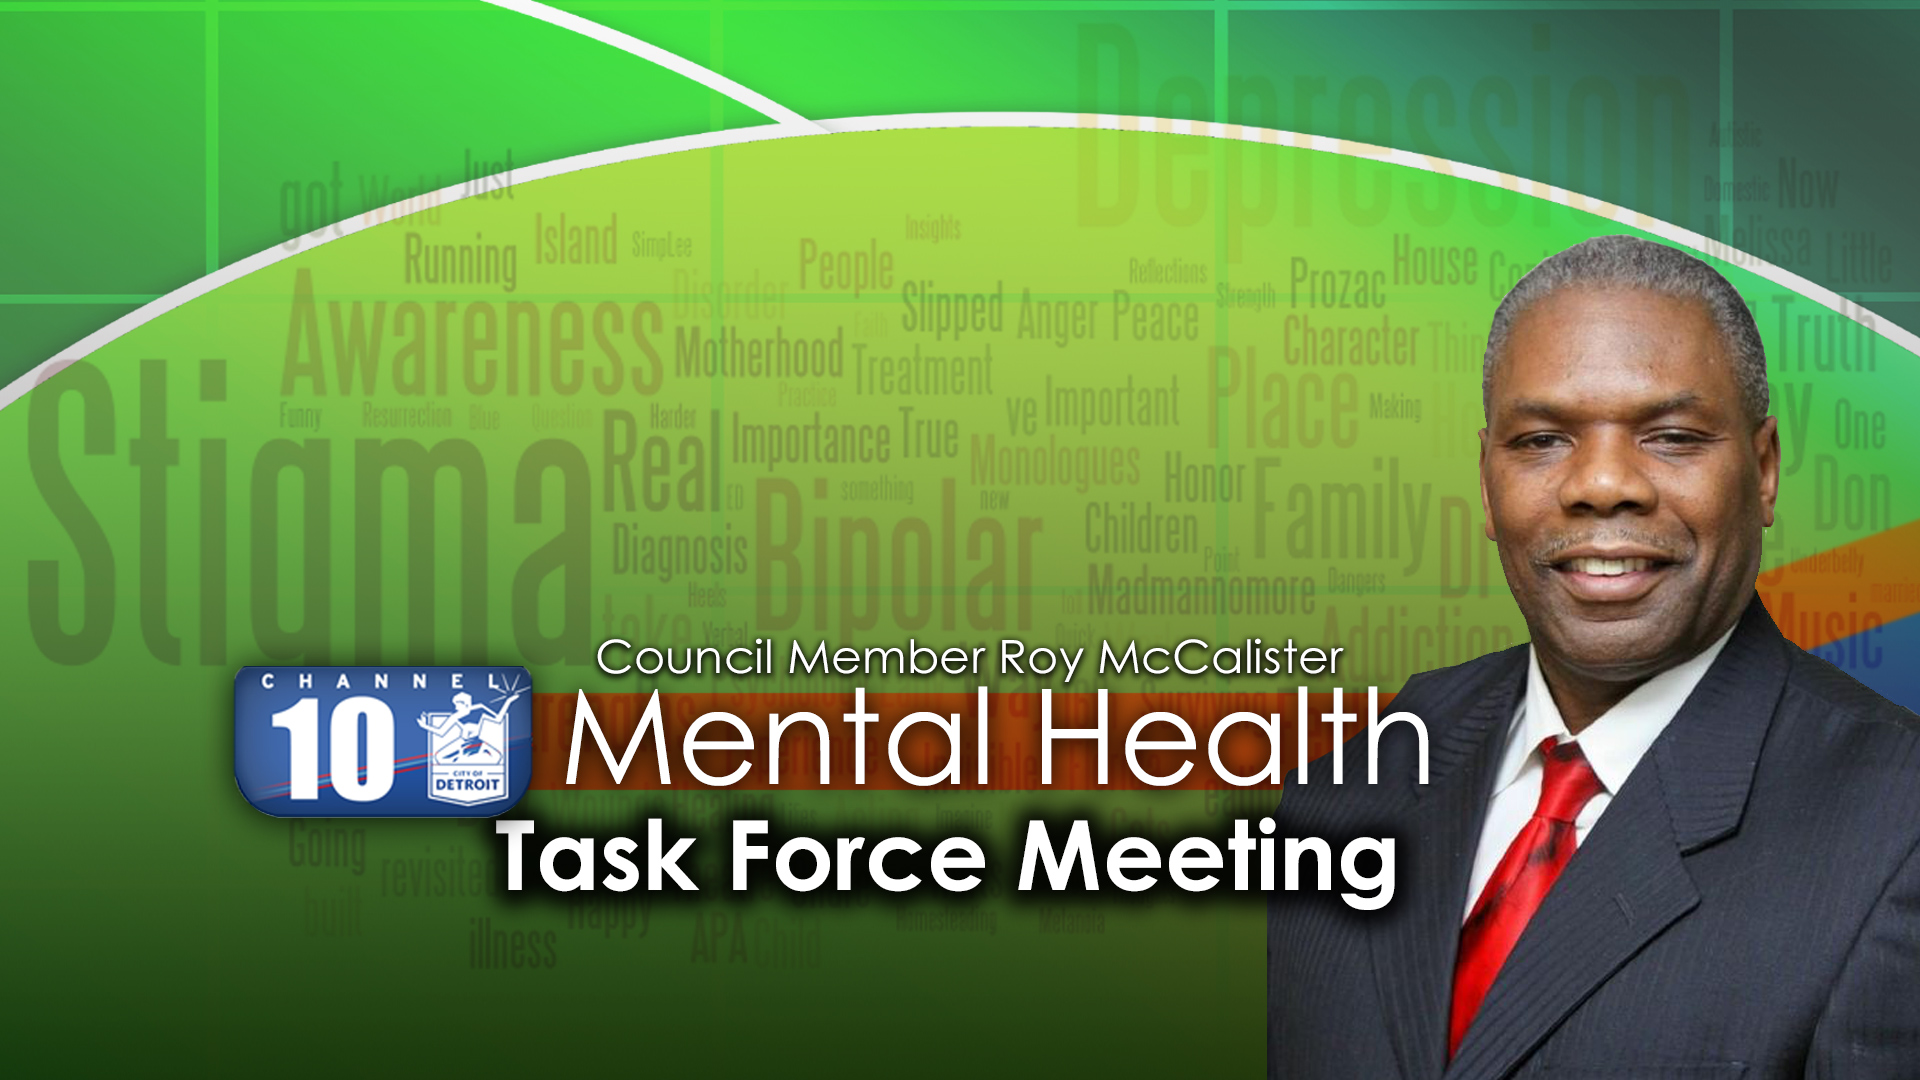 Councilman Roy McCalister, Jr. Mental Health Task Force